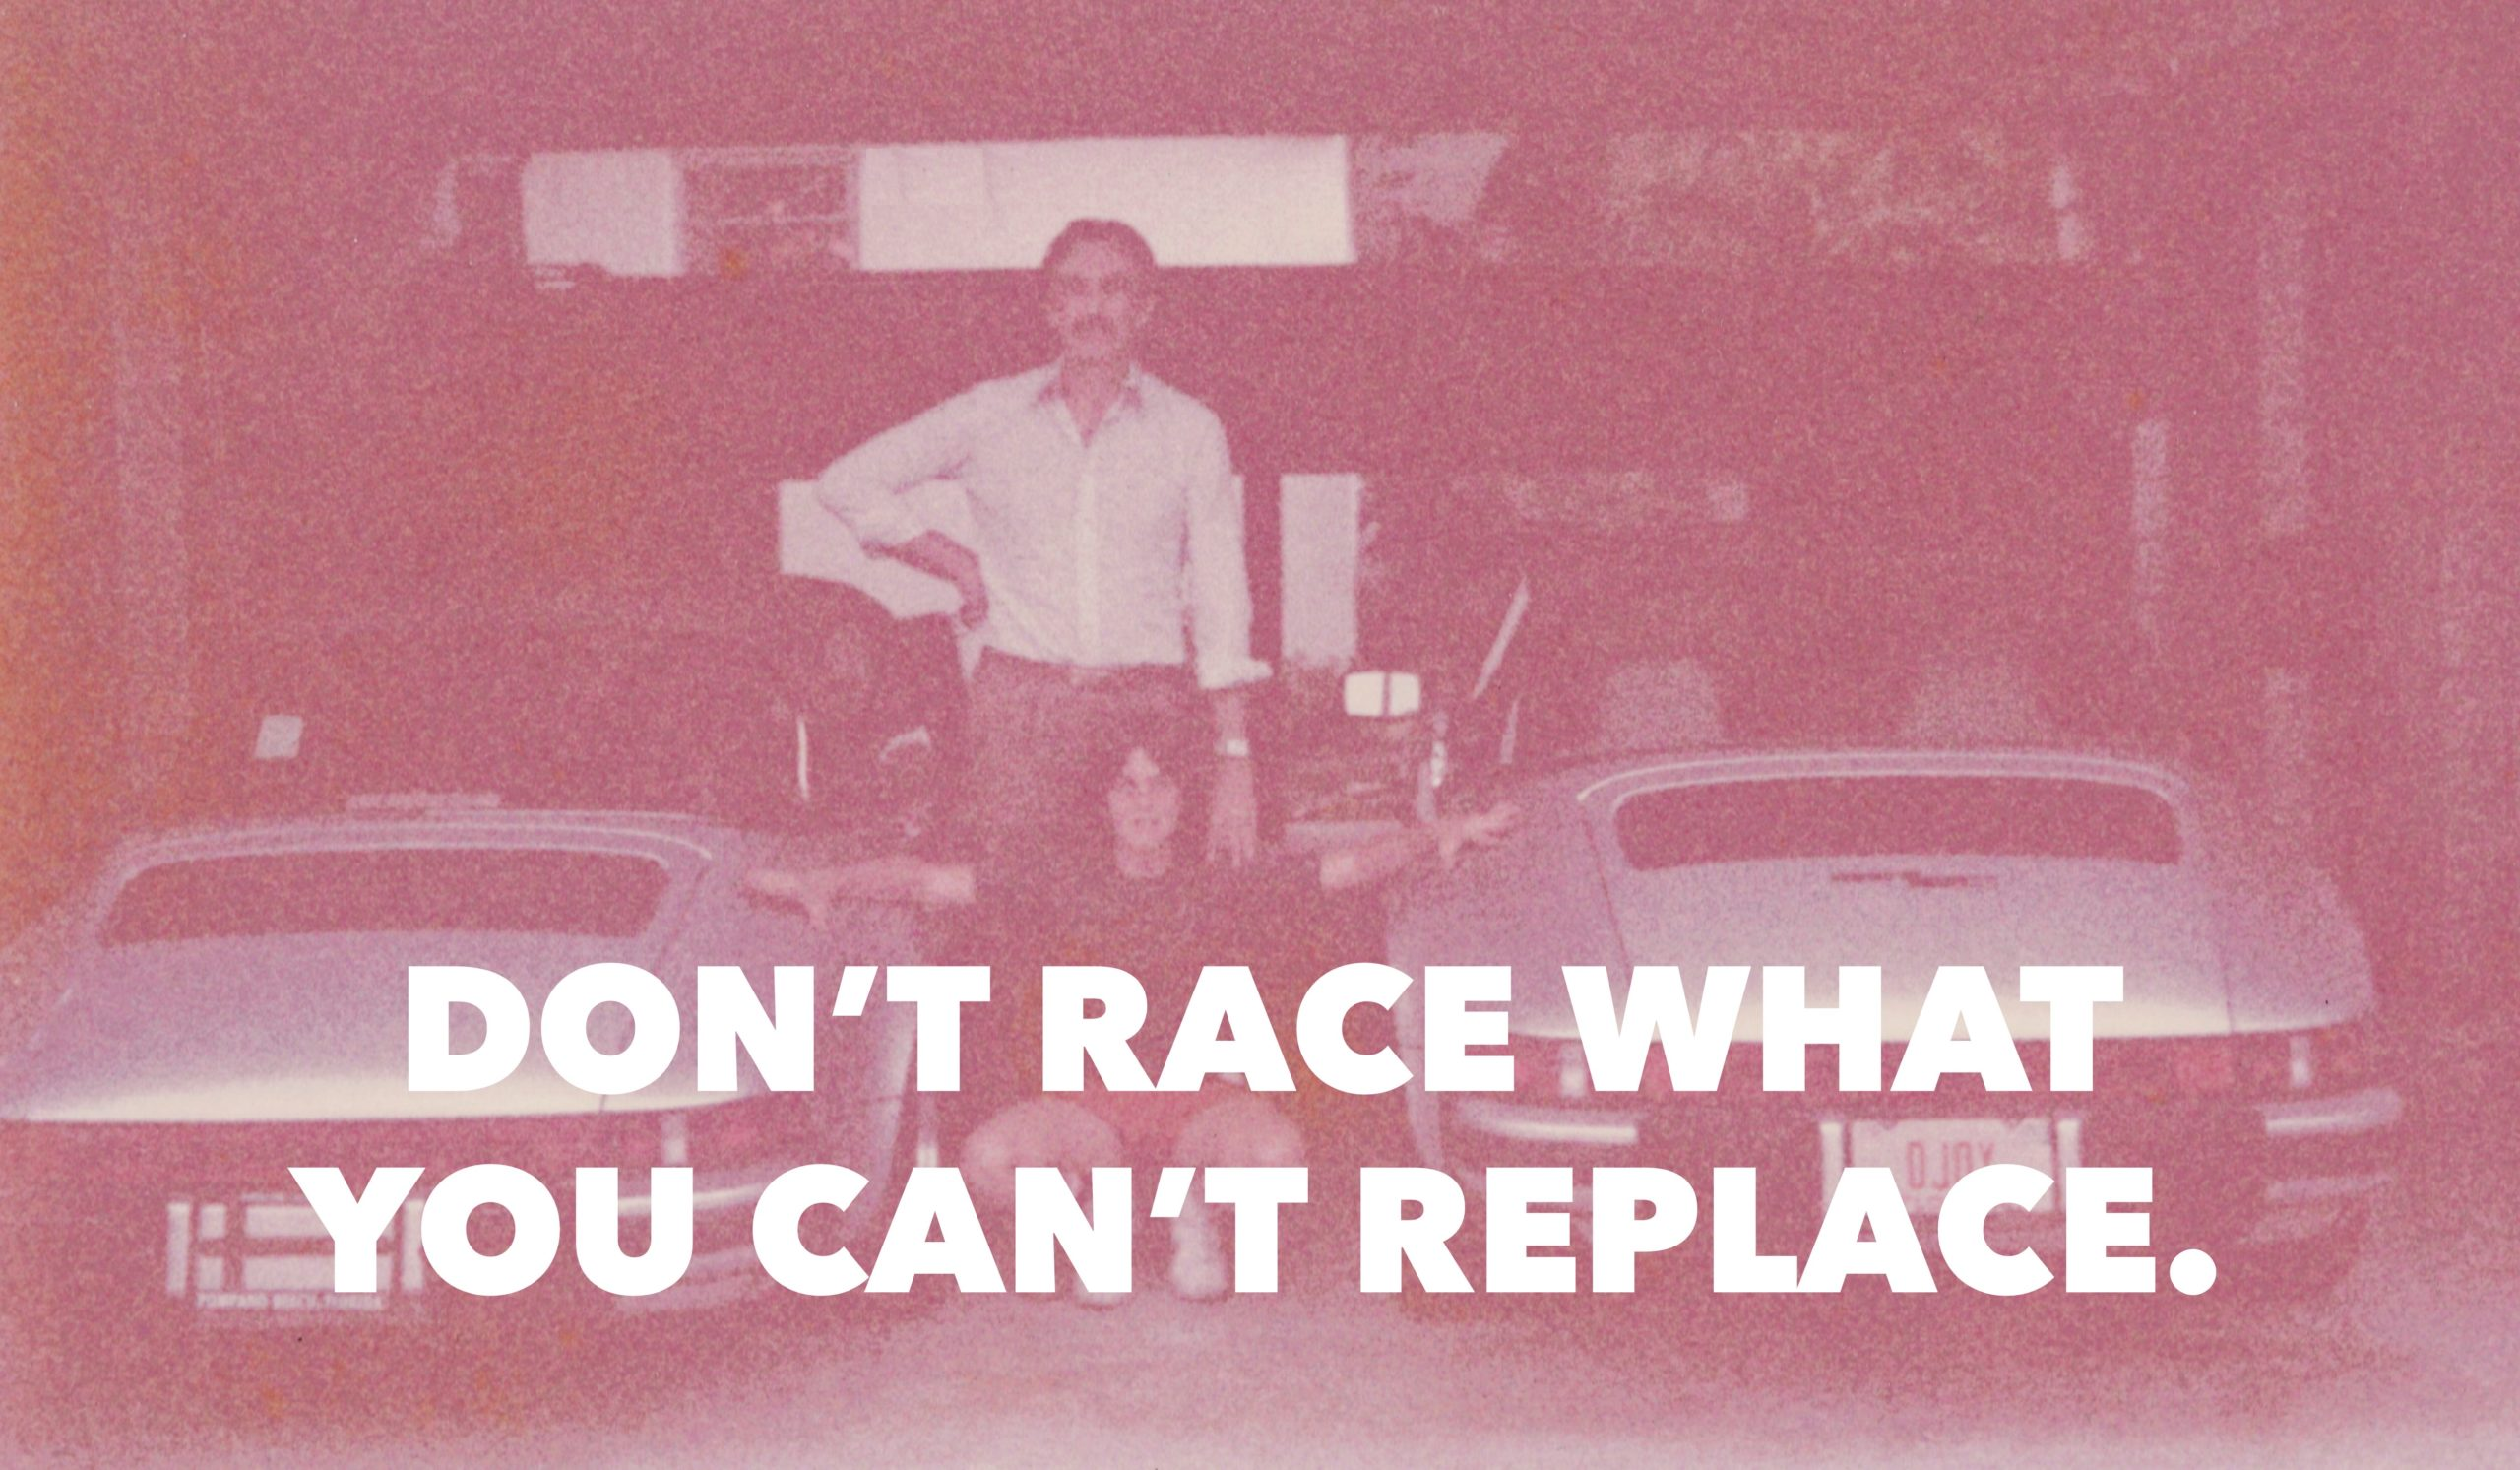 Don't Race What You Can't Replace.